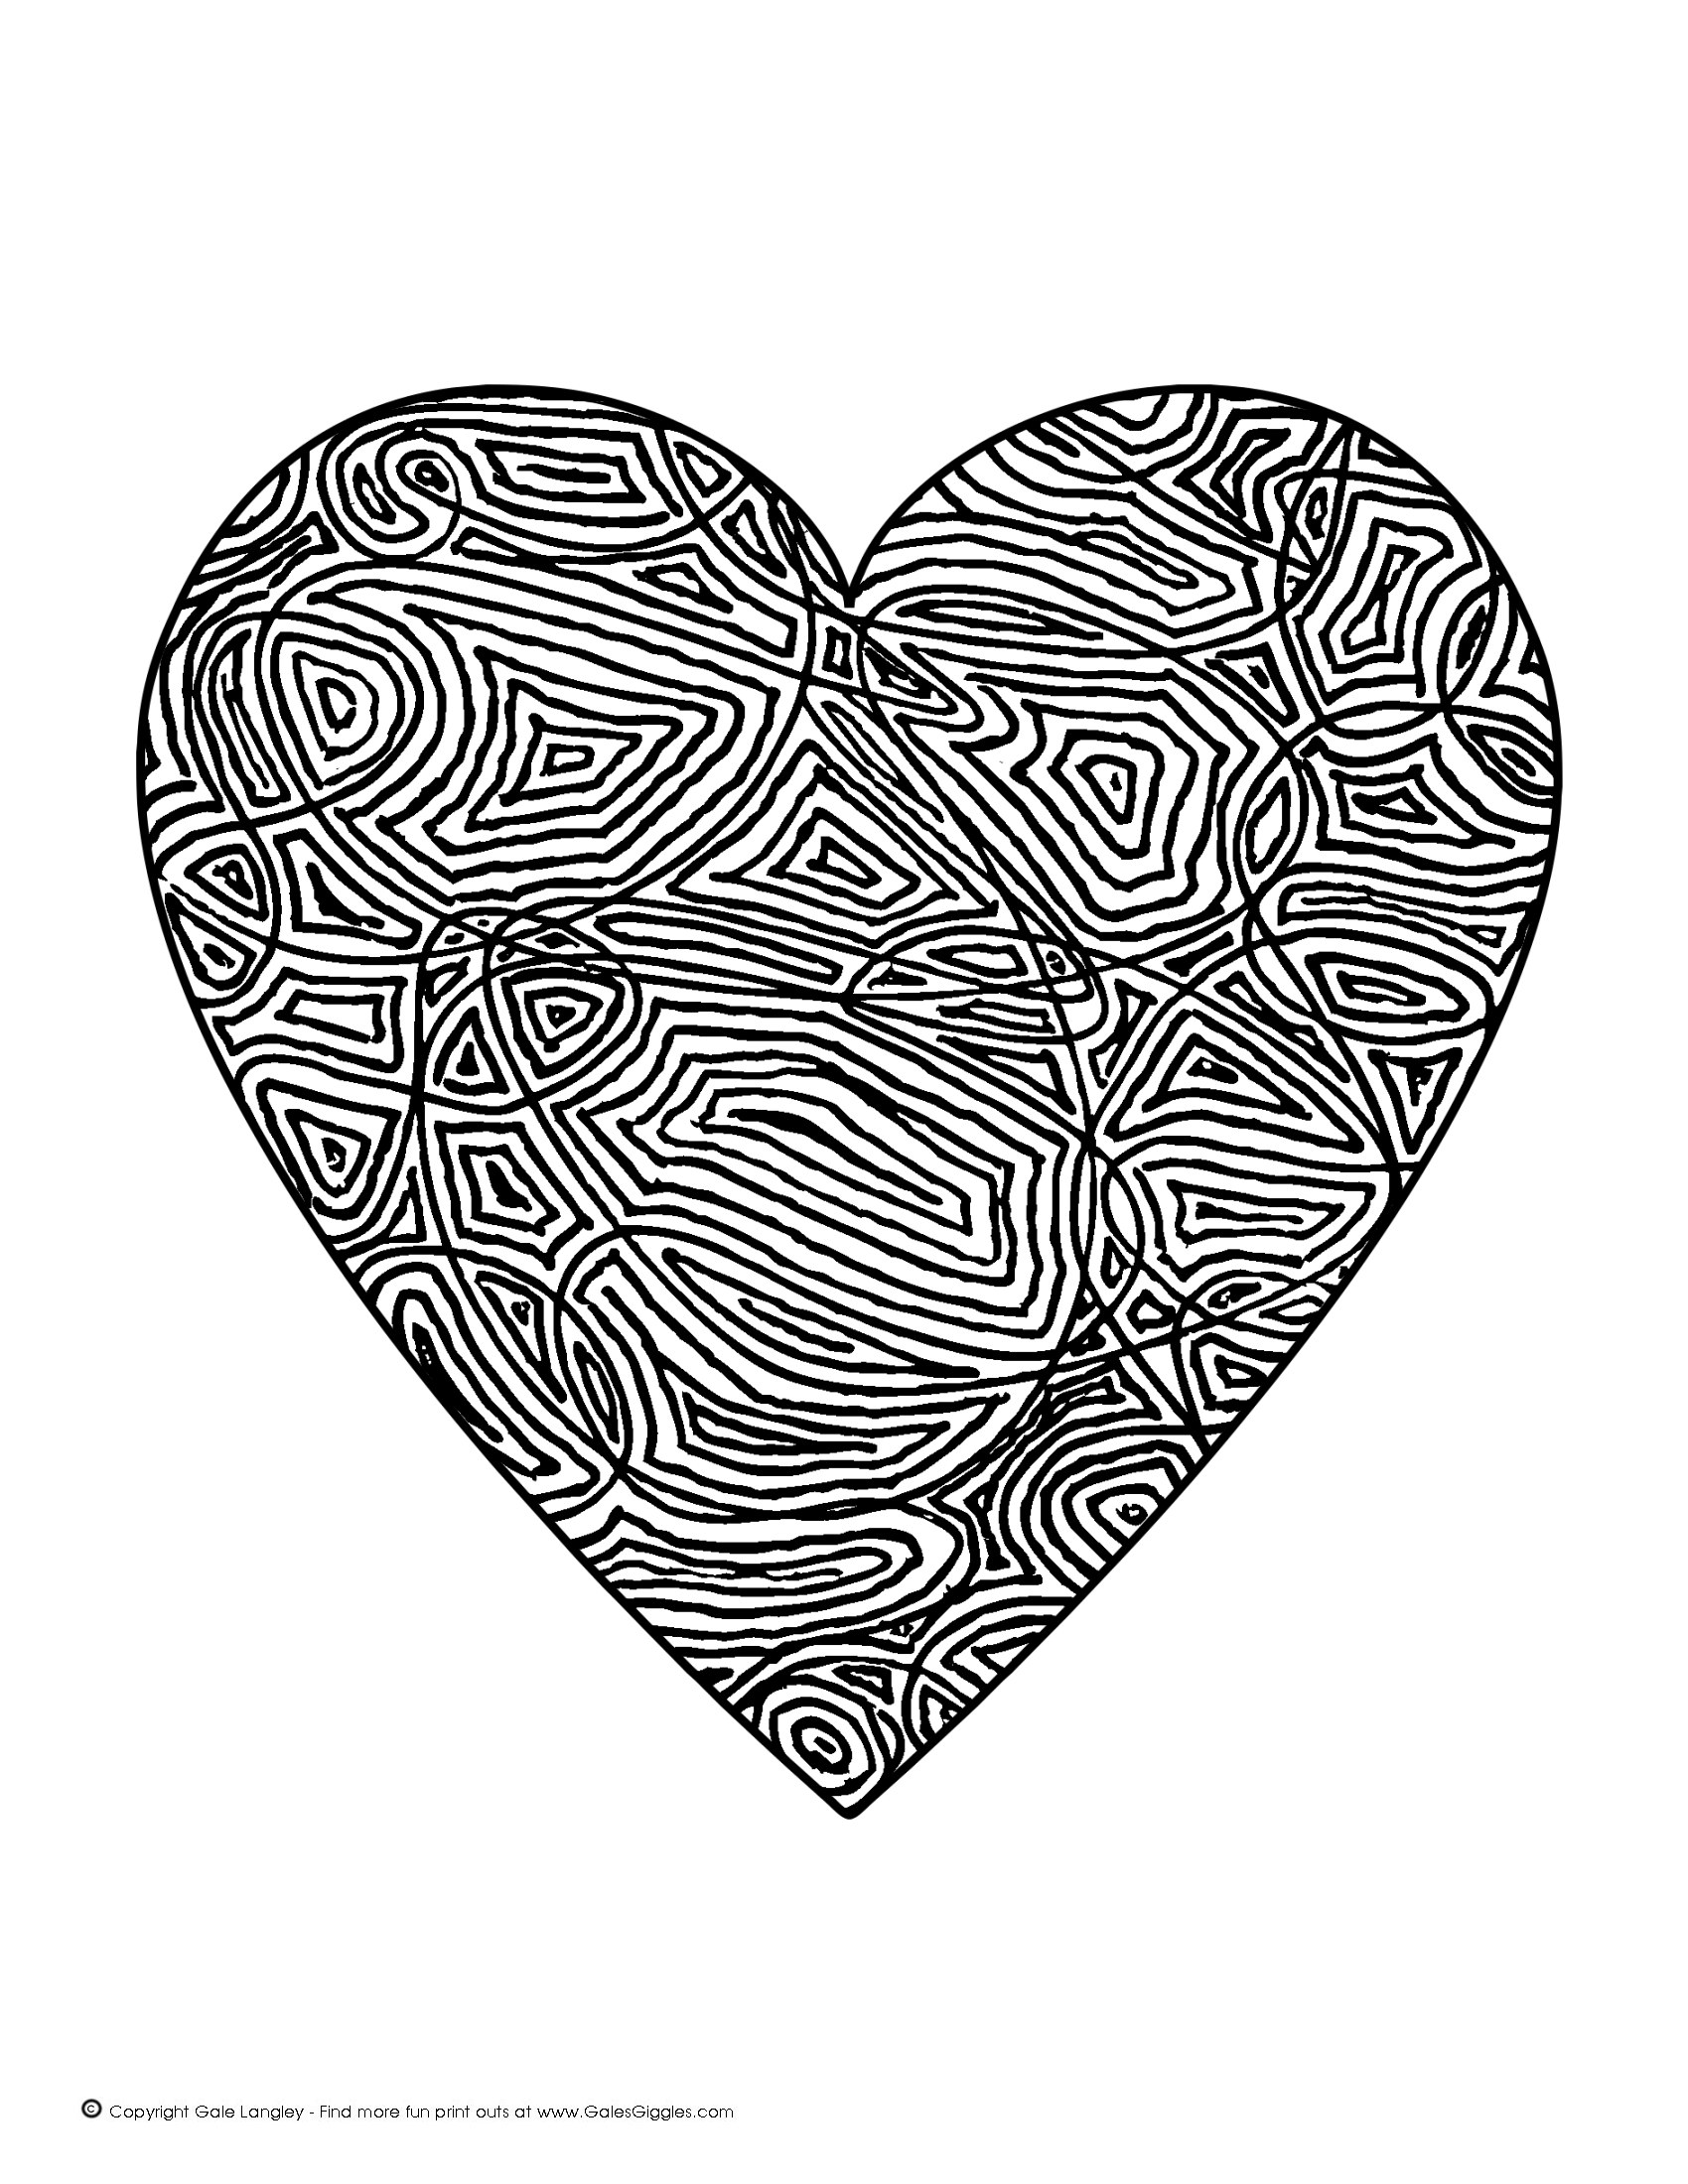 7 Images of Detailed Coloring Pages Free Printable Hearts